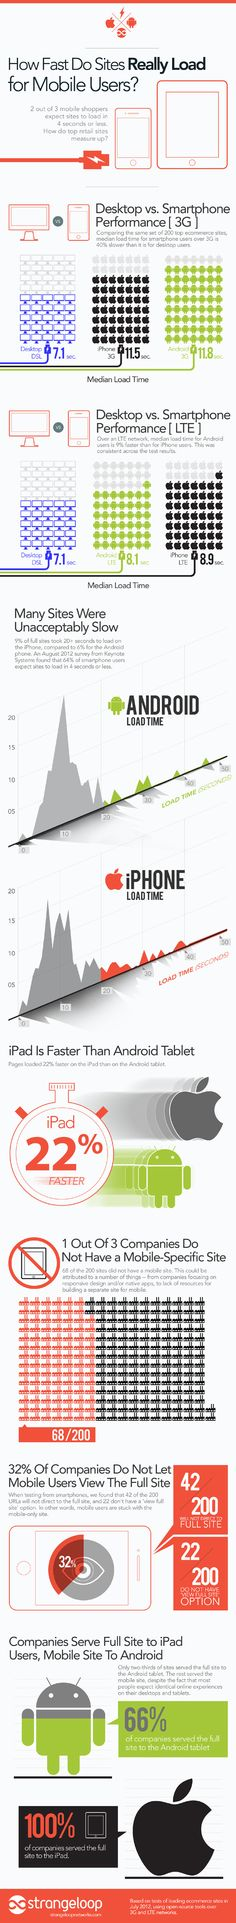 Performance of Mobile Web